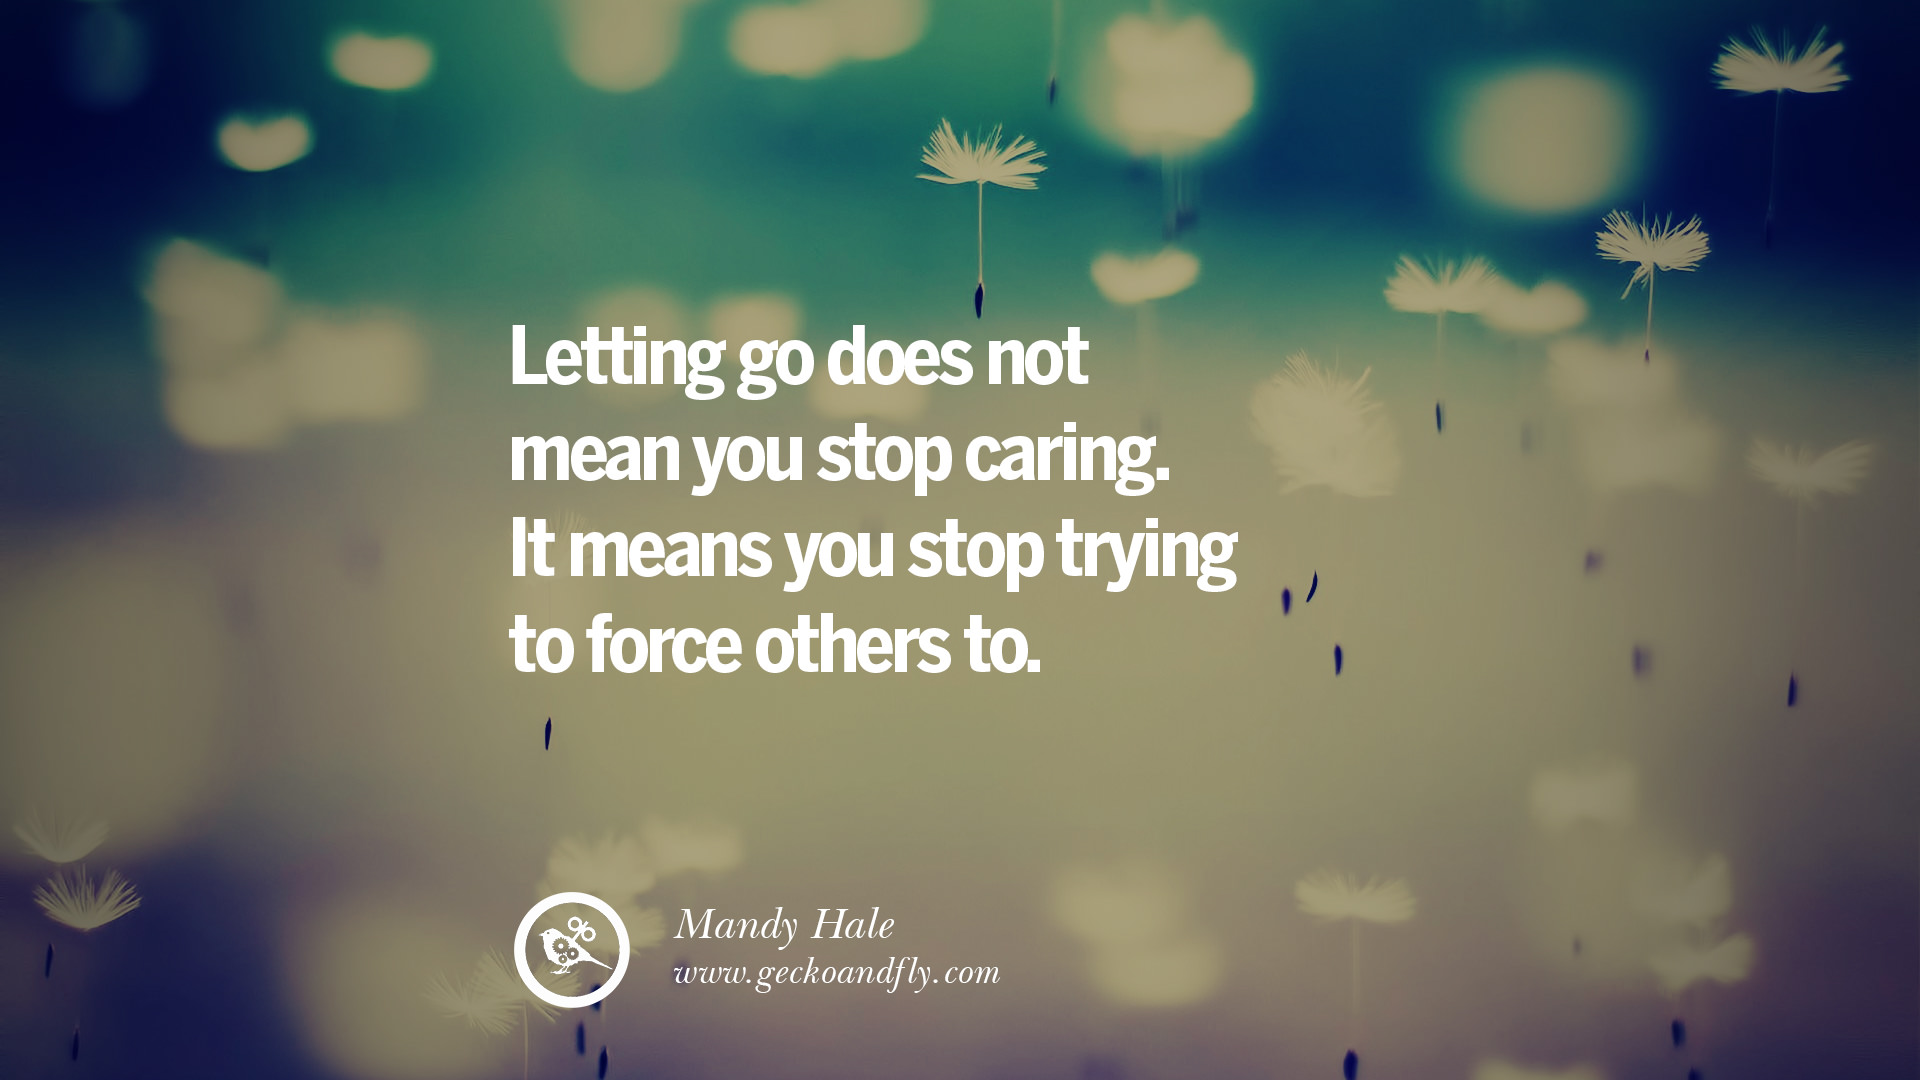 Quotes For Moving On 50 Quotes About Moving On And Letting Go Of Relationship And Love